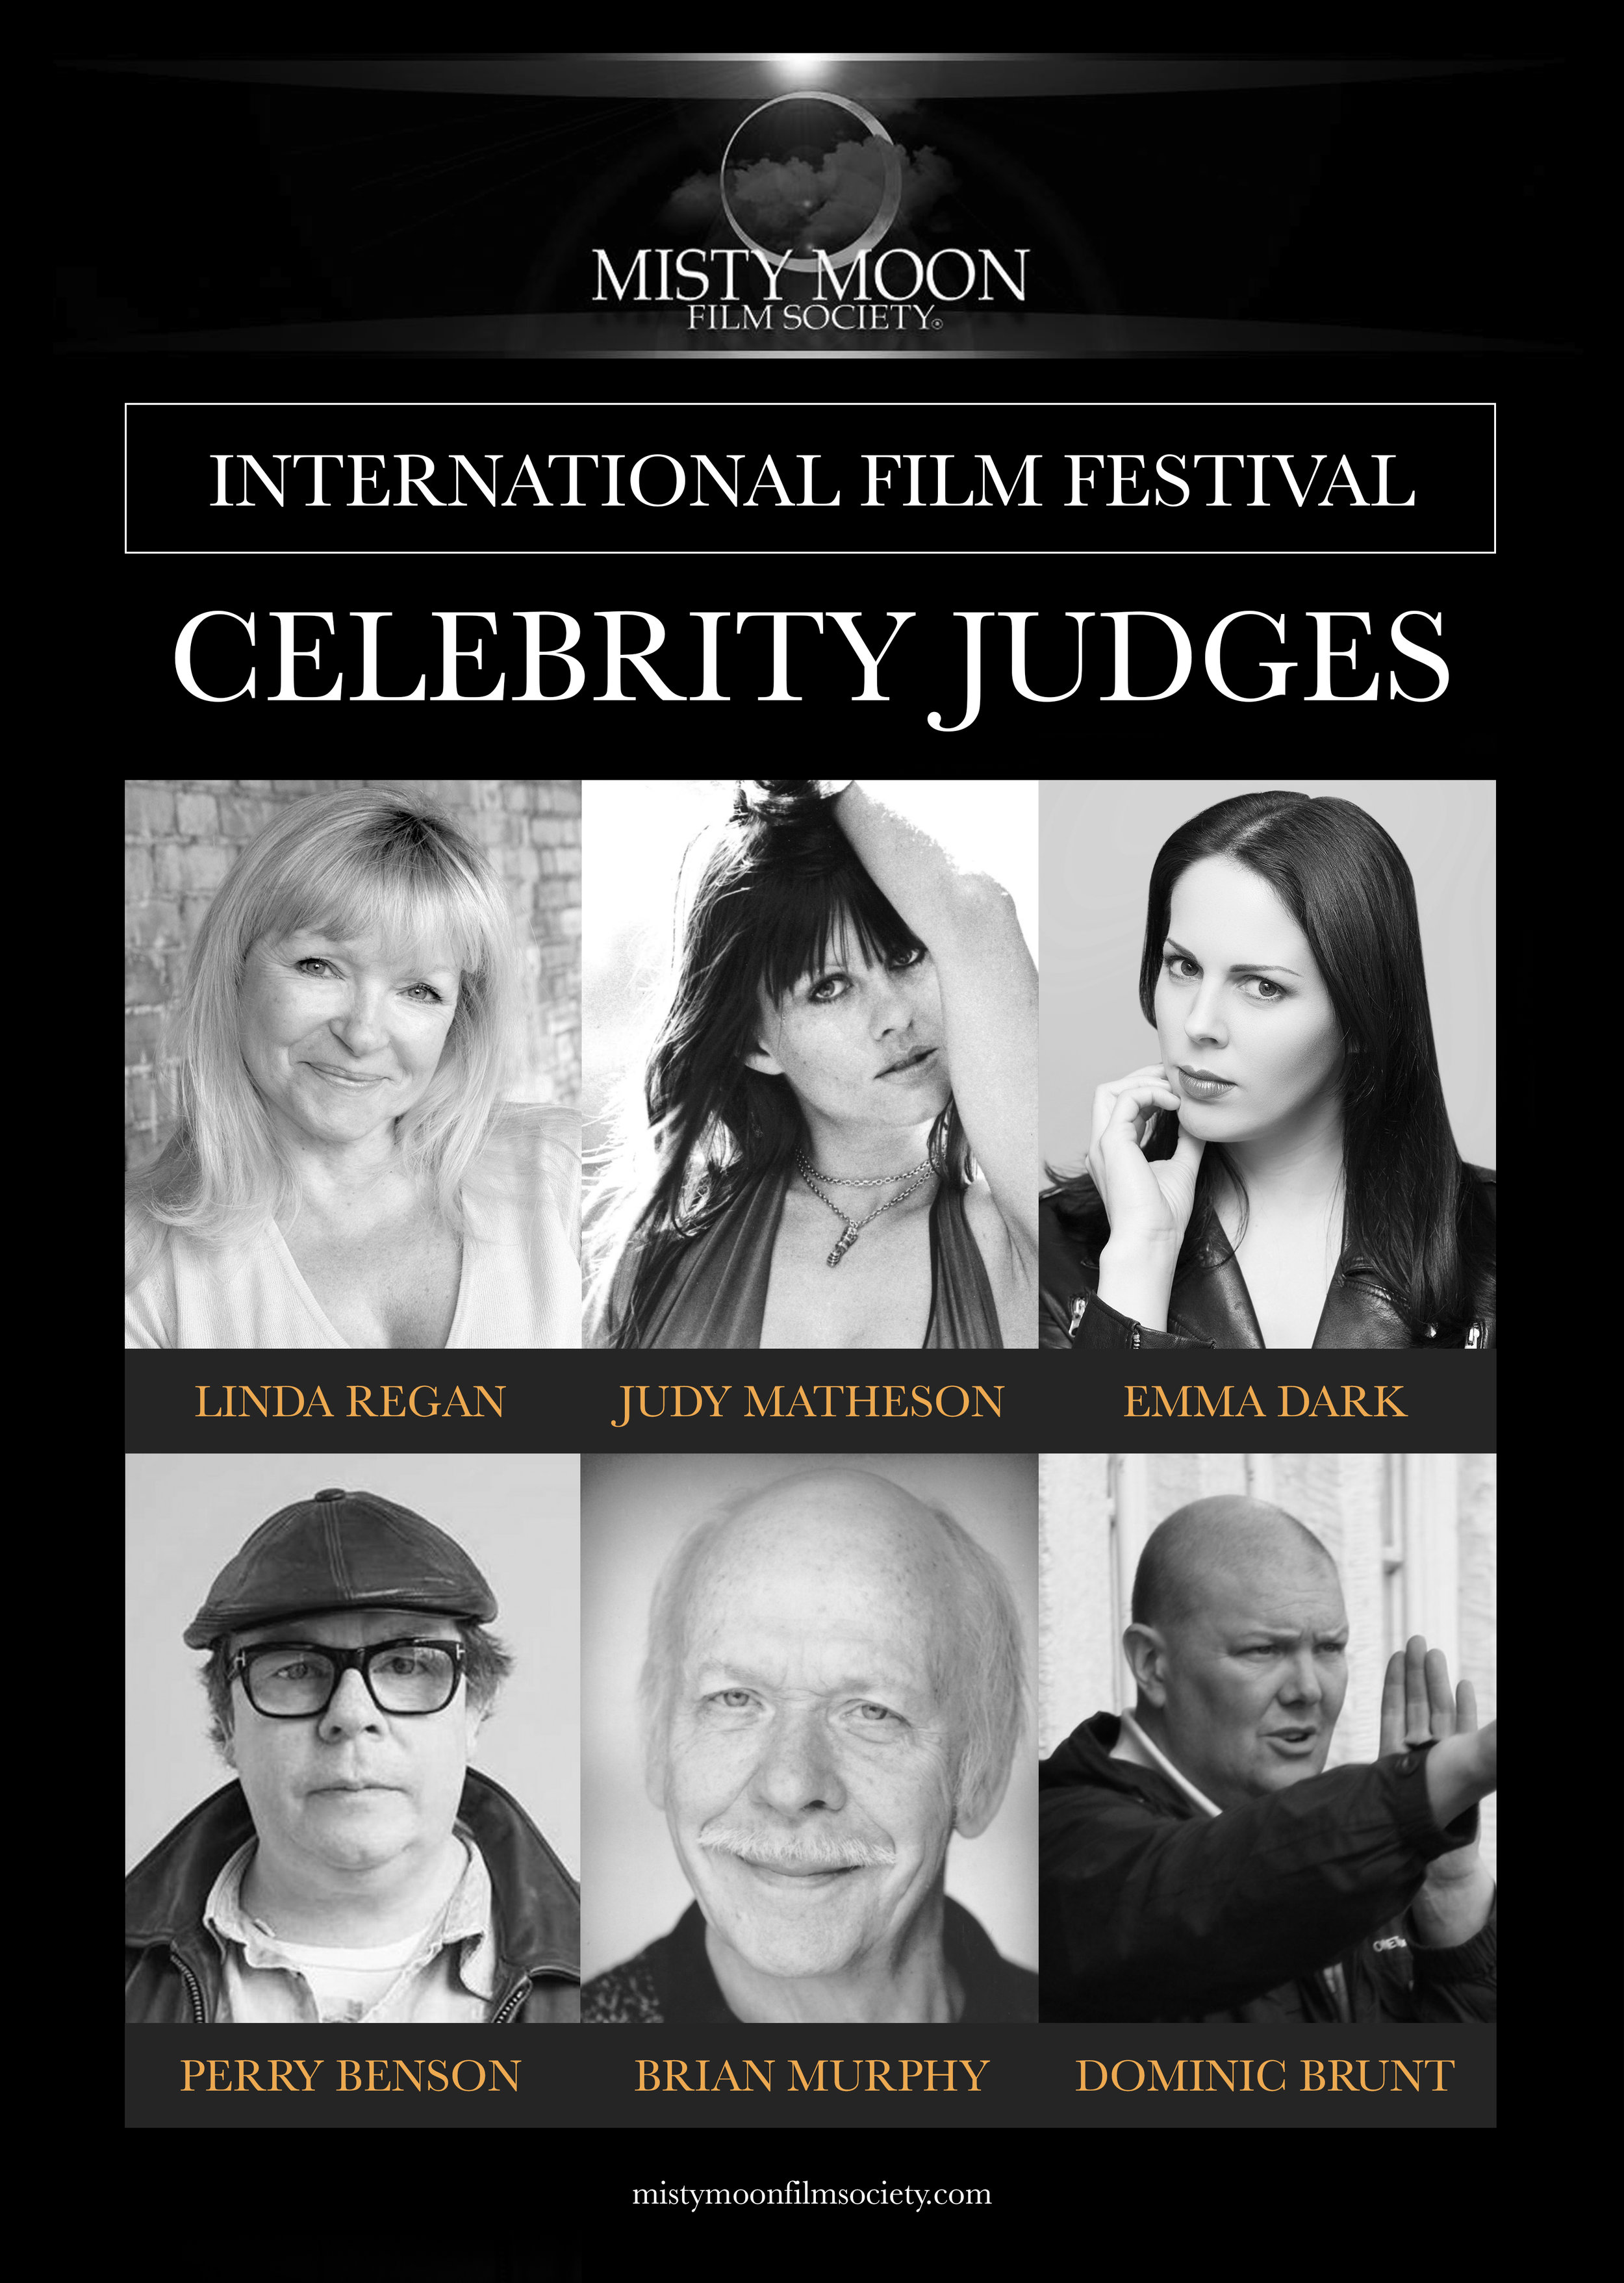 Judy Matheson – Actress  (Twins of Evil, Lust for a Vampire)   Perry Benson – Actor  (This is England, Sid and Nancy)   Brian Murphy – Actor  (Last of the Summer Wine,George & Mildred)   Dominic Brunt – Director/Actor  (Bait, Inbred, Emmerdale)   Emma Dark – Director/Actress  (Seize the Night, Island of the Blind Dead)   Linda Regan – Actress/Author  (Hi-De-Hi, Quadrophenia)